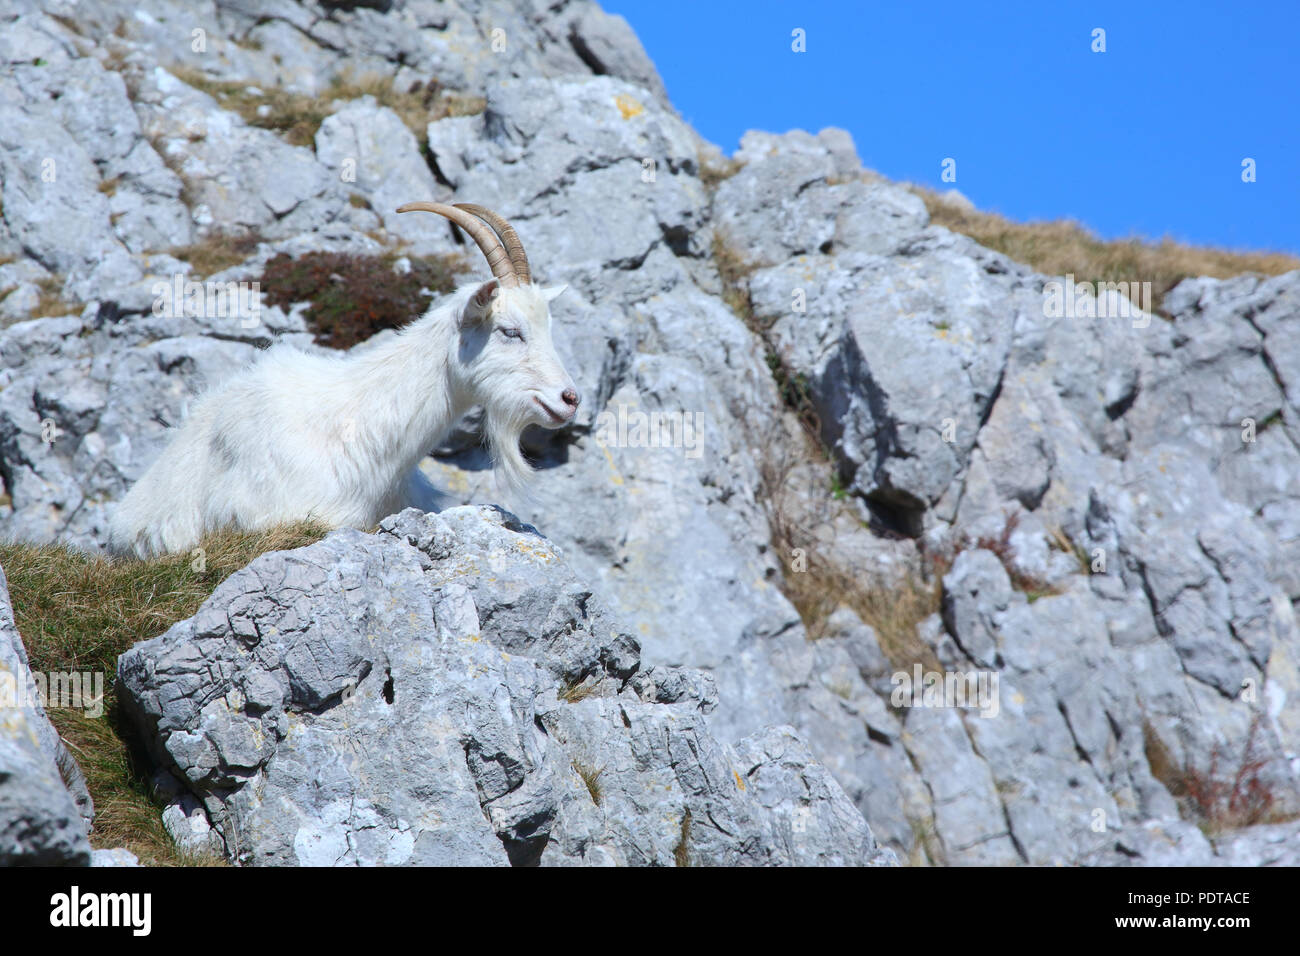 A wild Kashmiri Goat roaming free on the Great Orme in Llandudno,North Wales - Stock Image